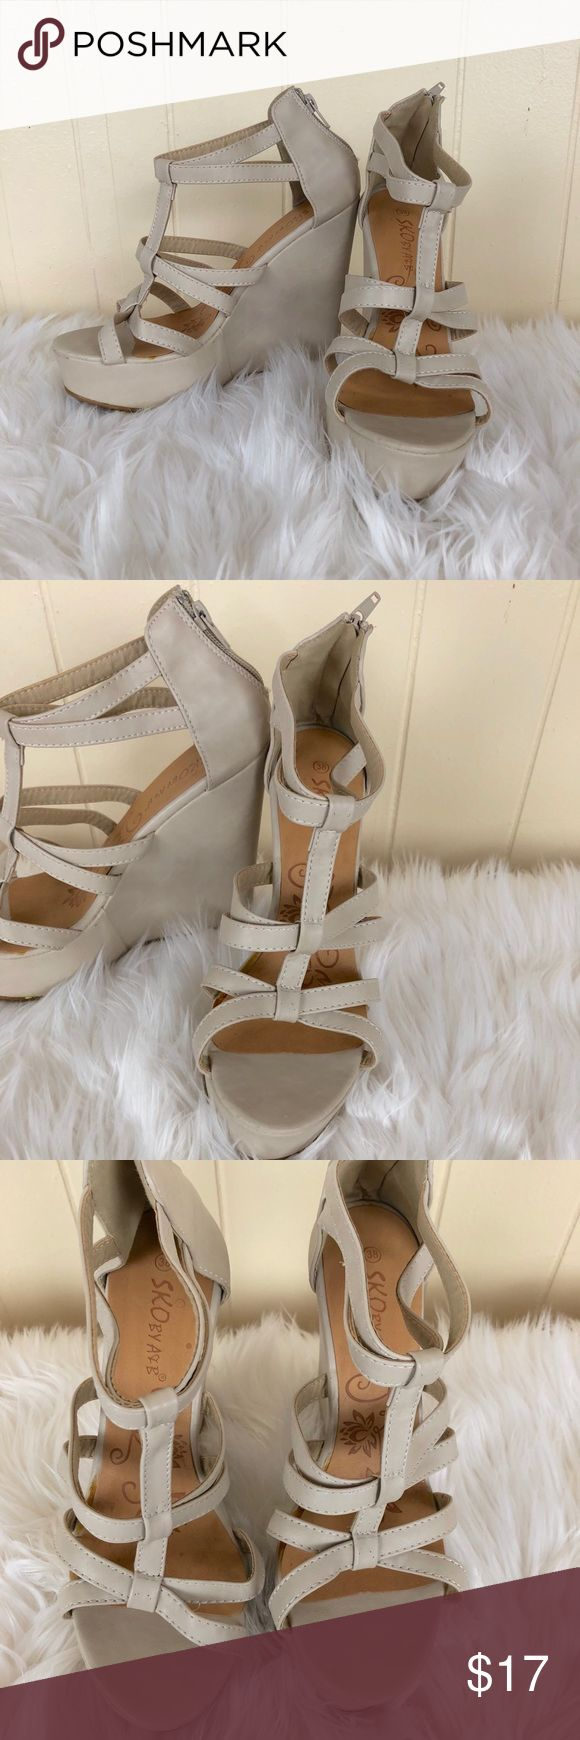 """Beige Strappy Nude Wedges Size 8 ✿Size: 8 ✿Color: Beige ✿Design: Strappy Wedge ✿Materials: Synthetic ✿Heel Height: Appx 5""""  Condition:Some glue is showing under the insole on shoes but is not visible when shoe is on. A couple of small scuffs on back top of wedges. Never been worn. Shoes Wedges"""